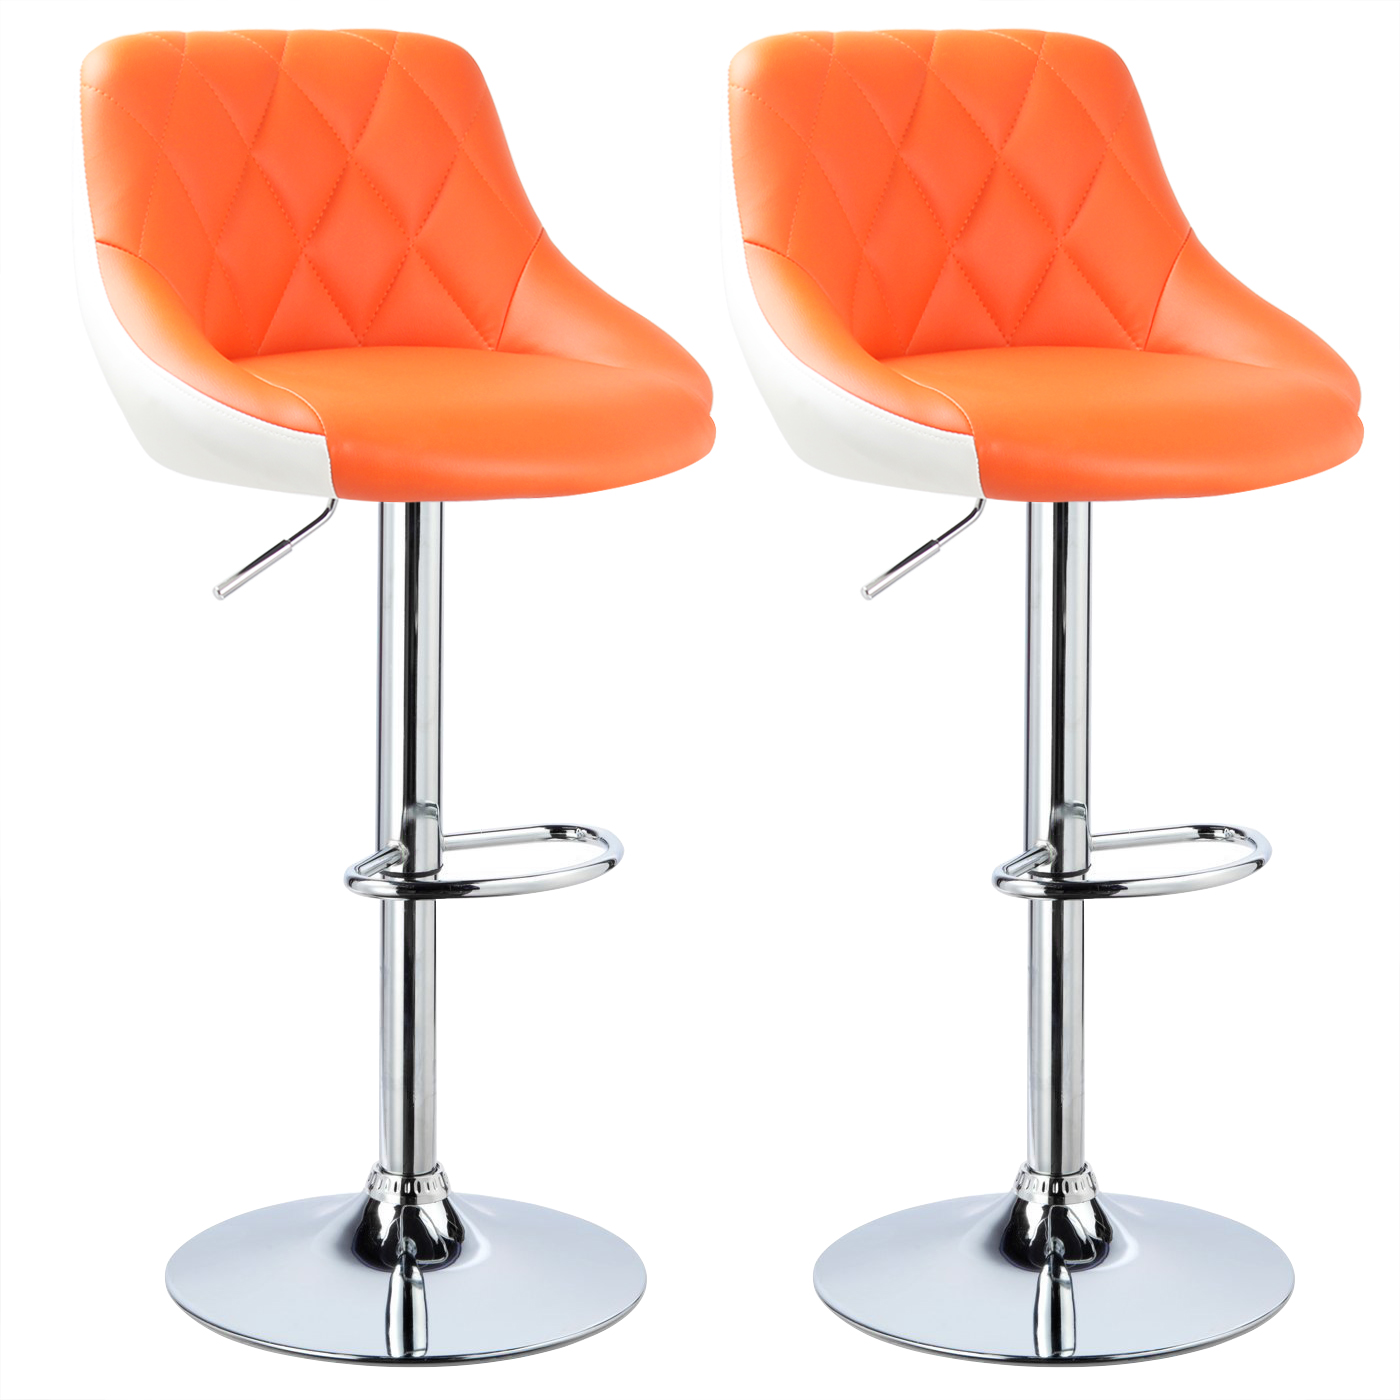 tabouret de bar pivotant 360 lot de 2 en pu 1 fauteuil chaise longue f050 ebay. Black Bedroom Furniture Sets. Home Design Ideas